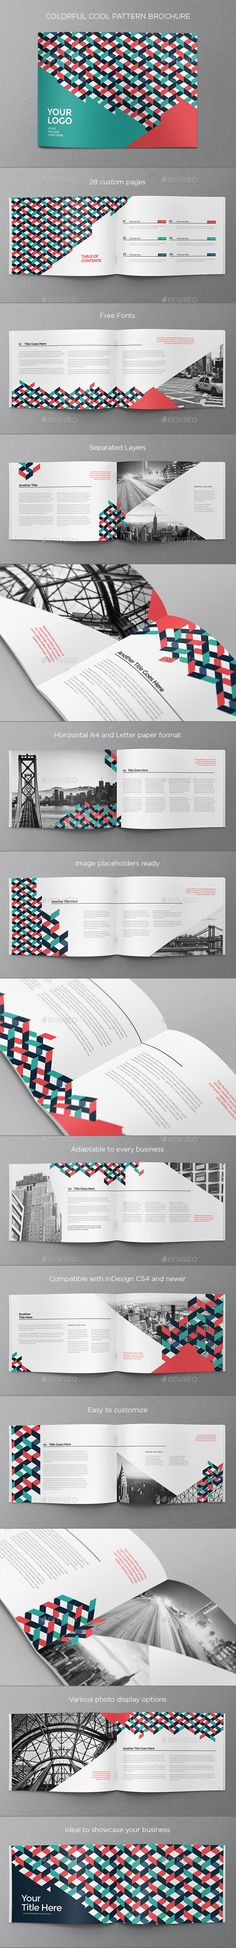 Colorful Cool Pattern Brochure Template 	InDesign INDD. Download here: https://graphicriver.net/item/colorful-cool-pattern-brochure/17113432?ref=ksioks